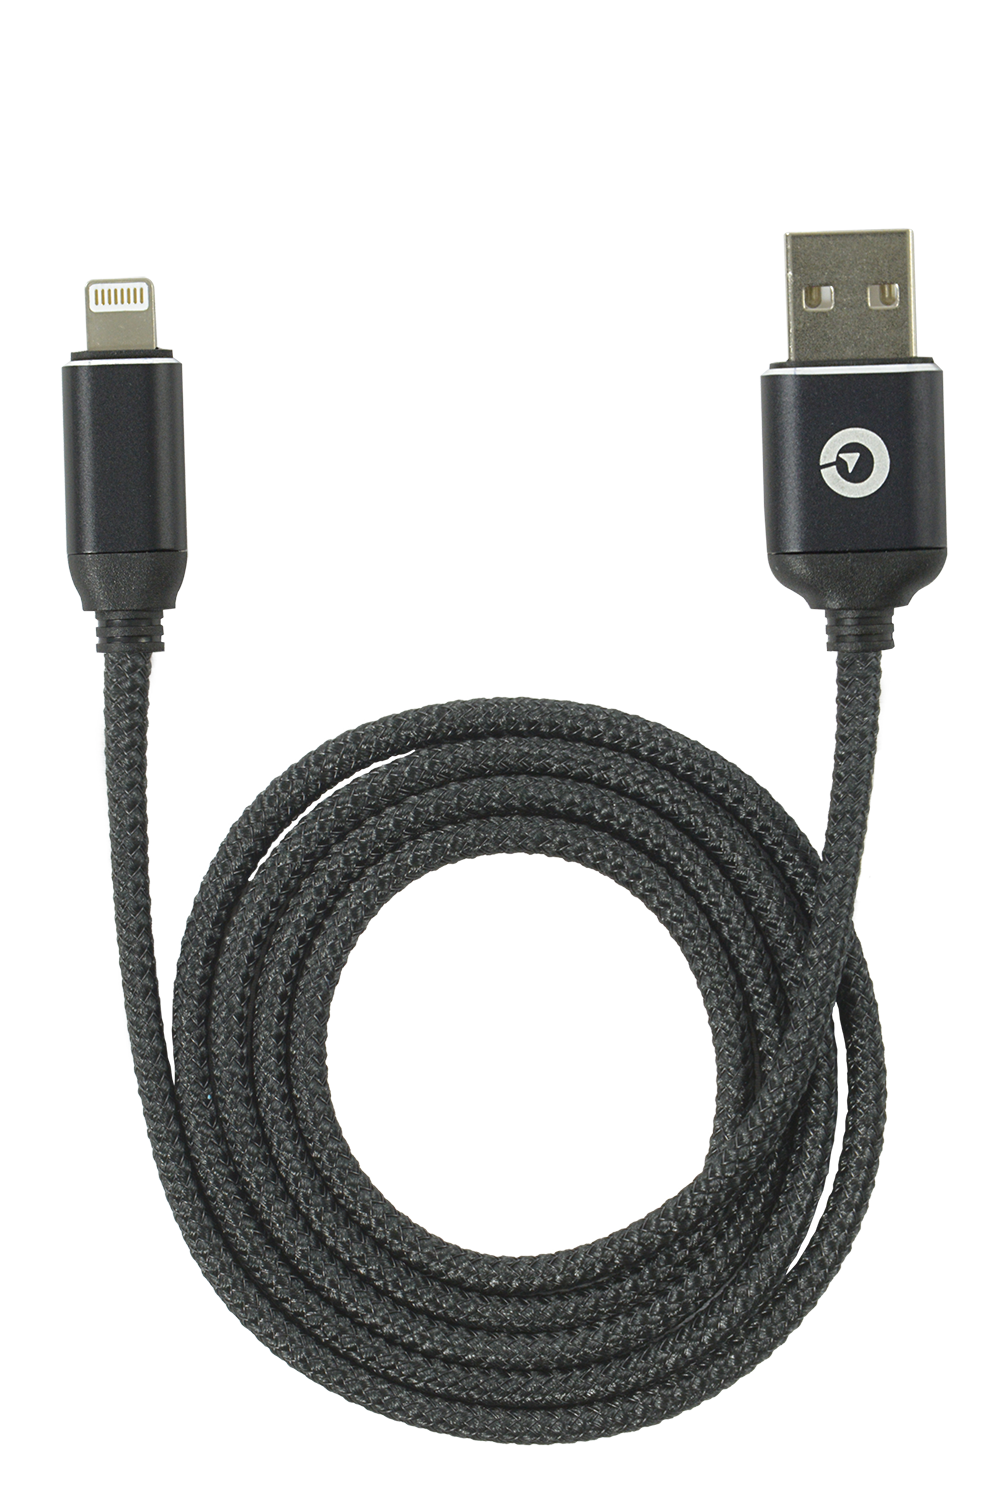 USB to Lightning Cable Black Nylon 3.3ft